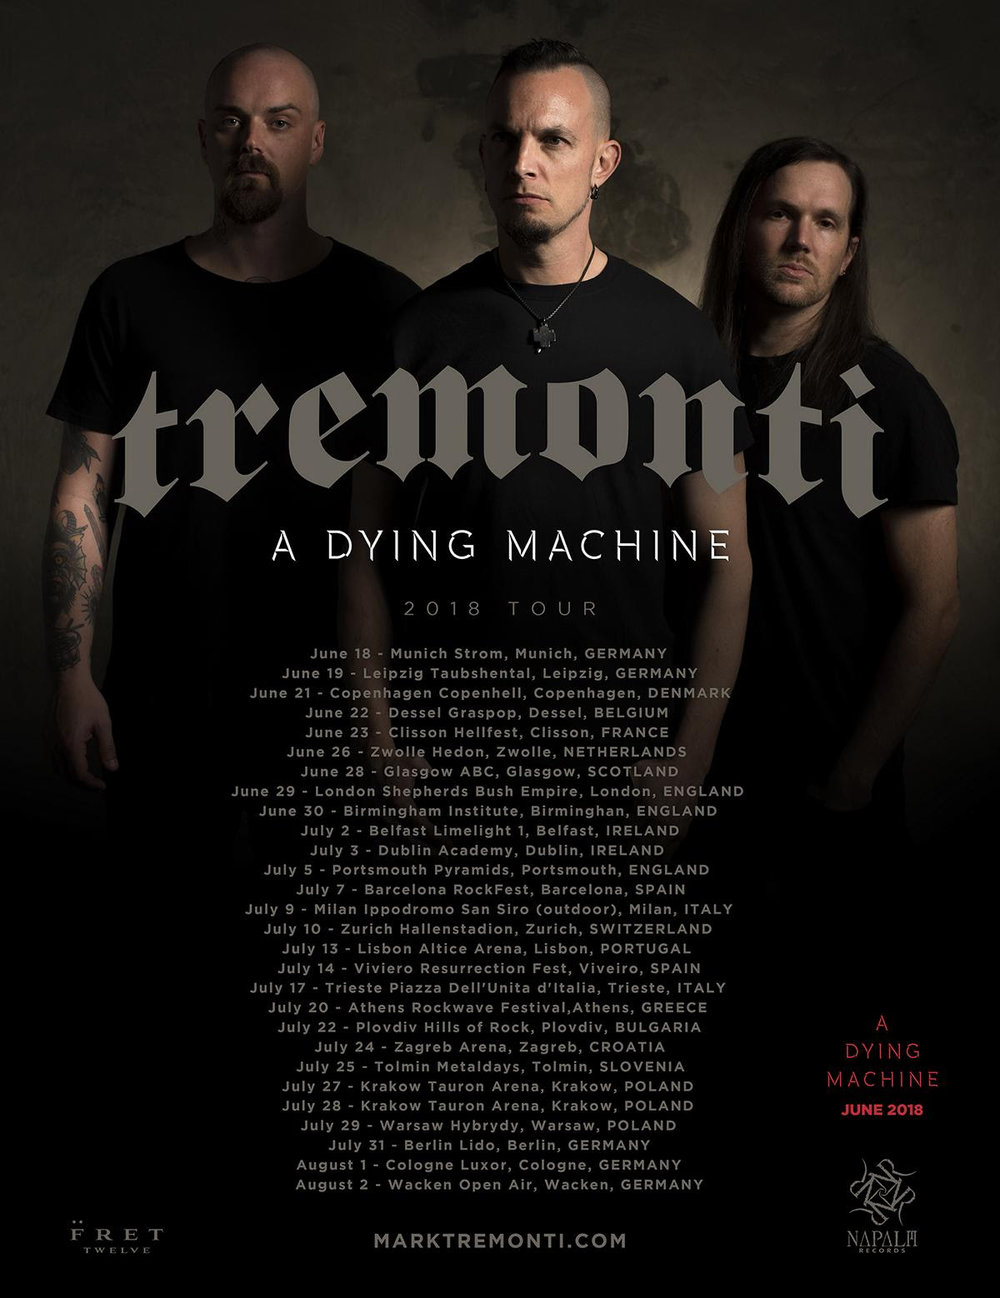 Website:  www.marktremonti.com   Facebook:  https://www.facebook.com/MarkTremonti/   Twitter: @MarkTremonti Instagram: @markttremonti    Tour Dates:   02.05.18 US - Savannah, GA / The Stage On Bay 04.05.18 US - Concord, NC / Carolina Rebellion 05.05.18 US - Virginia Beach, VA / Lunatic Luau 07.05.18 US - Atlanta, GA / The Masquerade 12.05.18 US - Orlando, FL / The Social  *w/ Iron Maiden 17.06.18 IT - Florence / Firenze Rocks 18.06.18 DE - Munich / Strom 19.06.18 DE - Leipzig /Täubchental 21.06.18 DK - Copenhagen / Copenhell 22.06.18 BE - Dessel / Graspop Metal Meeting 23.06.18 FR - Clisson / Hellfest 26.06.18 NL - Zwolle / Hedon 28.06.18 UK - Glasgow / 02 ABC 29.06.18 UK - London / 02 Shepherd's Bush Empire 30.06.18 UK - Birmingham / 02 Institute 02.07.18 UK - Belfast / Limelight 03.07.18 UK - Dublin / Academy 05.07.18 UK - Portsmouth / Pyramids Centre 09.07.18 IT - Milan / San Siro Ippodromo* 10.07.18 CH - Zurich / Hallenstadion* 13.07.18 PO - Lisbon / Altice Arena* 14.07.18 ES - Viveiro / Viveiro Ressurrection Fest 17.07.18 IT - Muggia / Piazza Unita d'Italia* 24.07.18 CR - Zagreb / Zagreb Arena* 27.07.18 PL - Krakow / Tauron Arena* 28.07.18 PL - Krakow / Tauron Arena* 29.07.18 PL - Warsaw / Klub Hybrydy 31.07.18 DE - Berlin / Lido 01.08.18 DE - Cologne / Luxor 02.08.18 DE - Wacken / Wacken Open Air